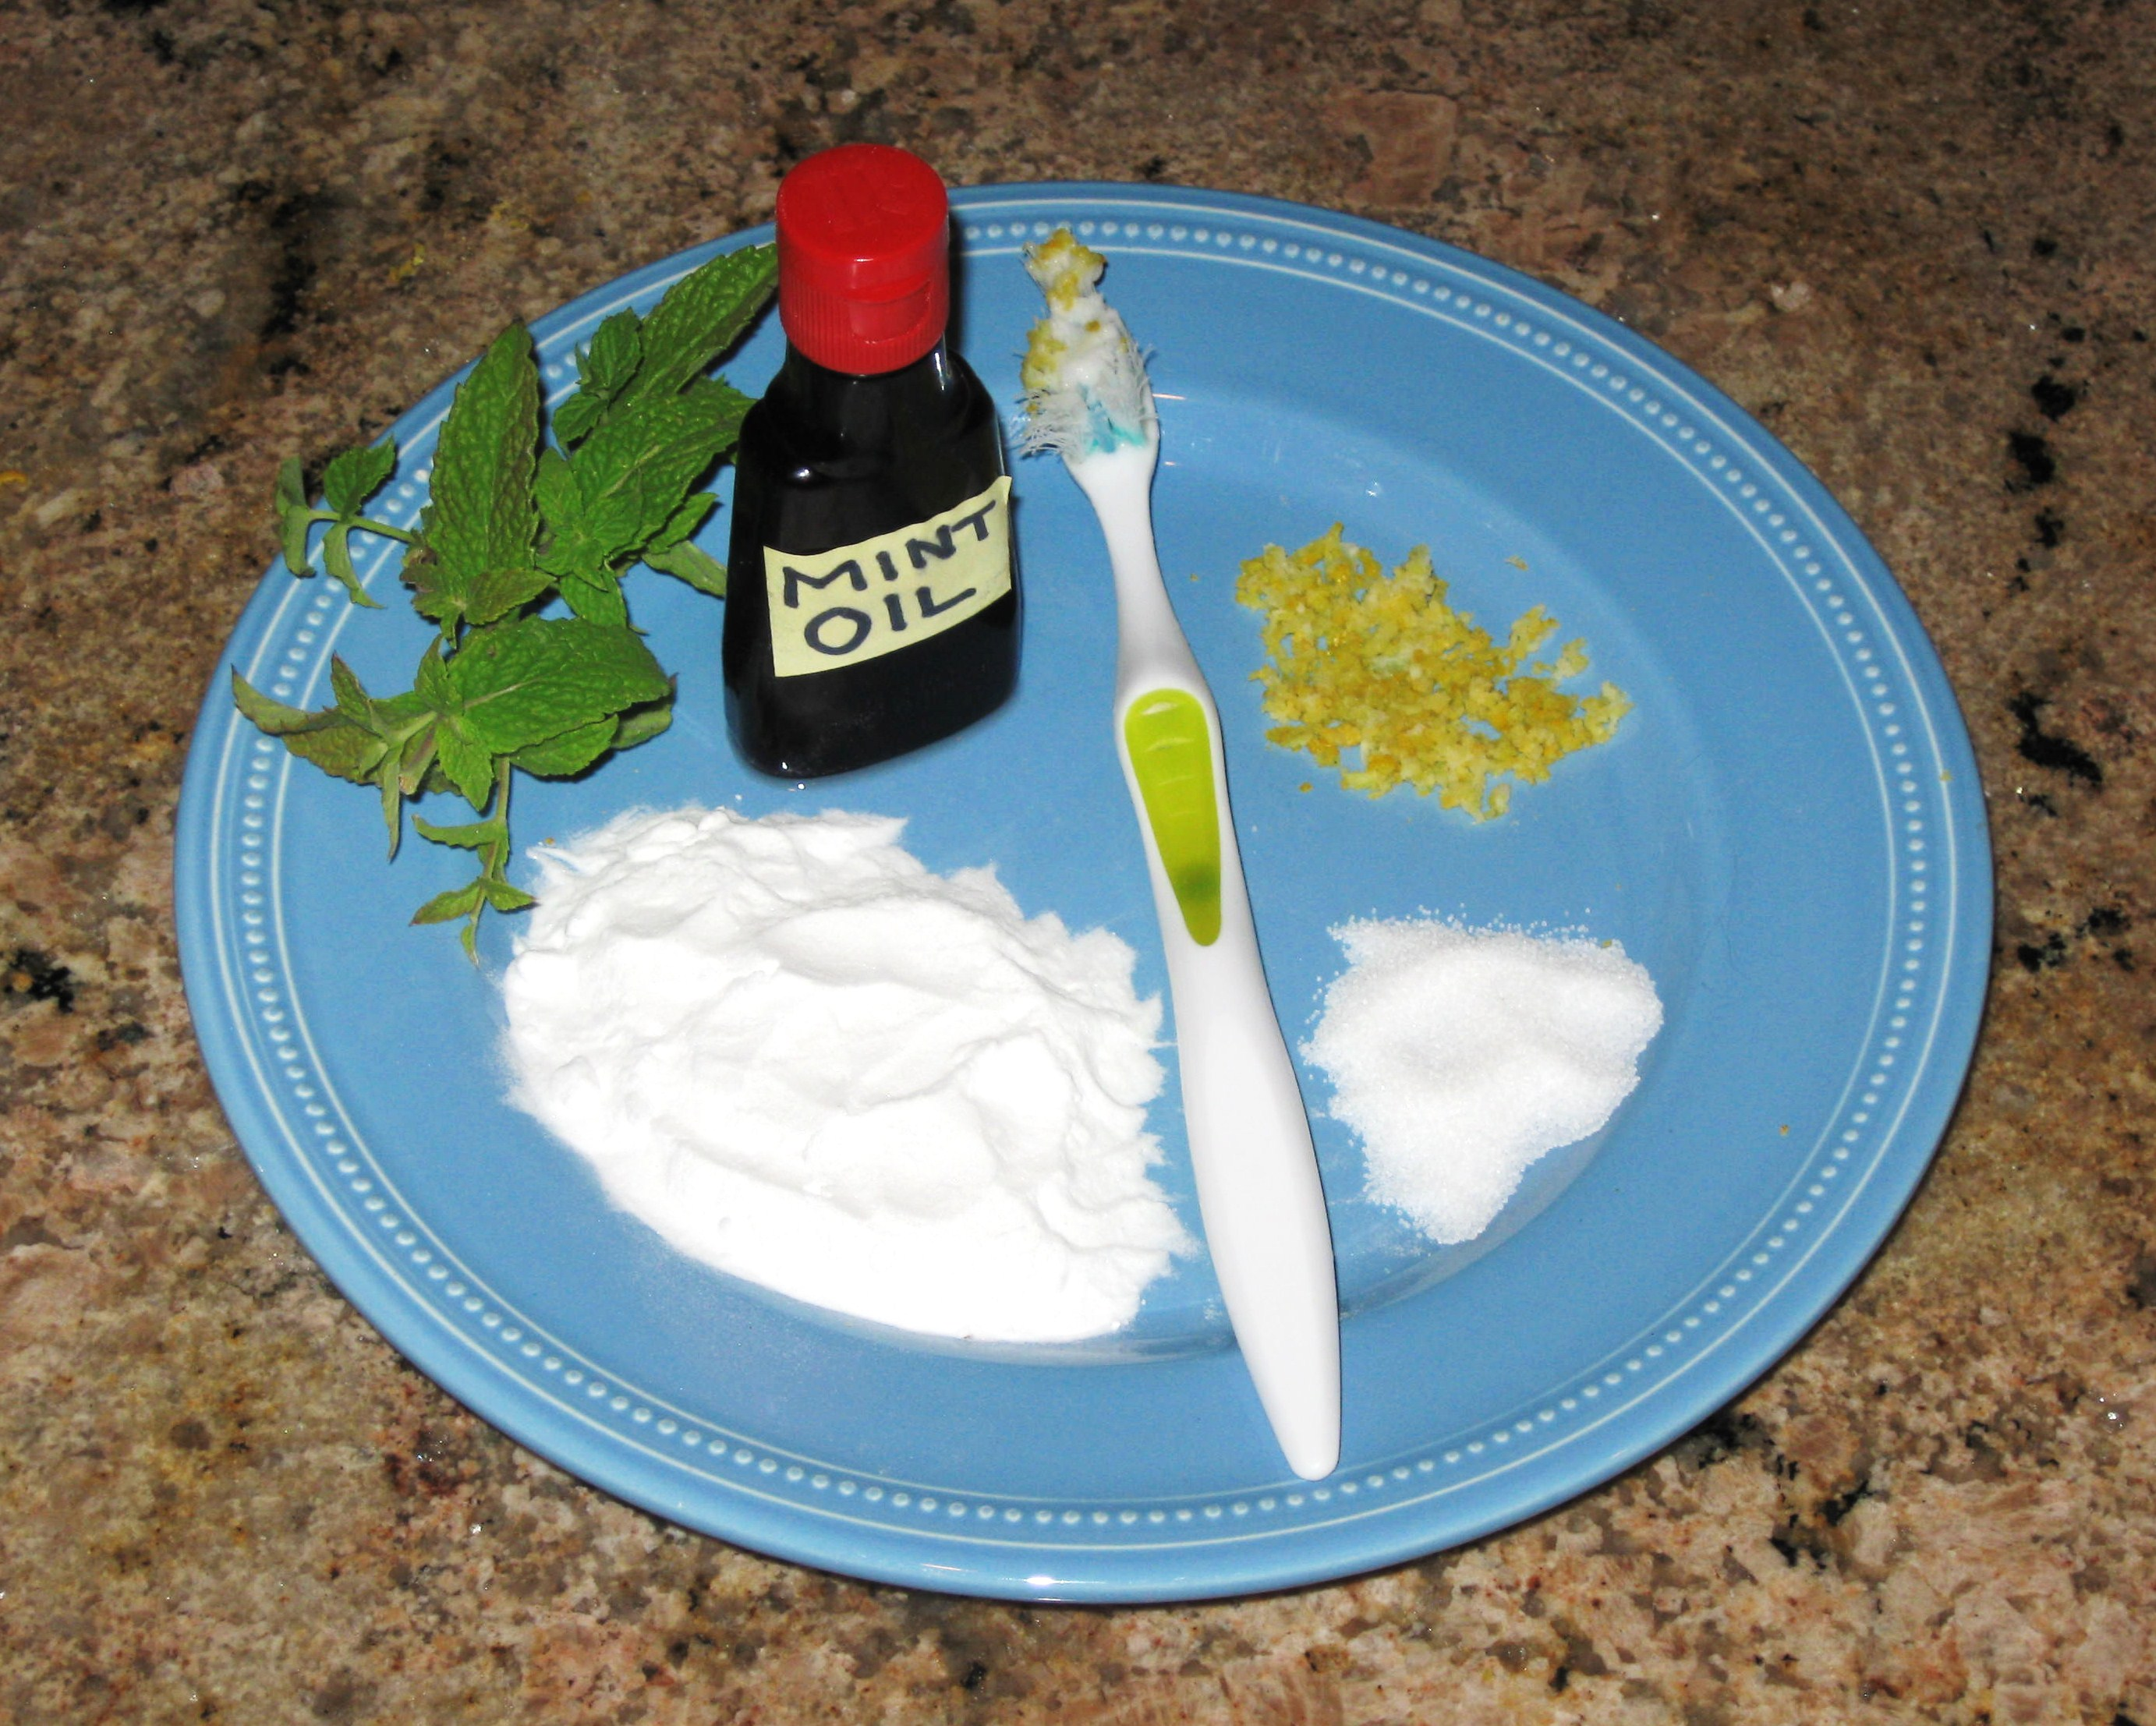 Take an easy baby step – make natural, homemade toothpaste ...